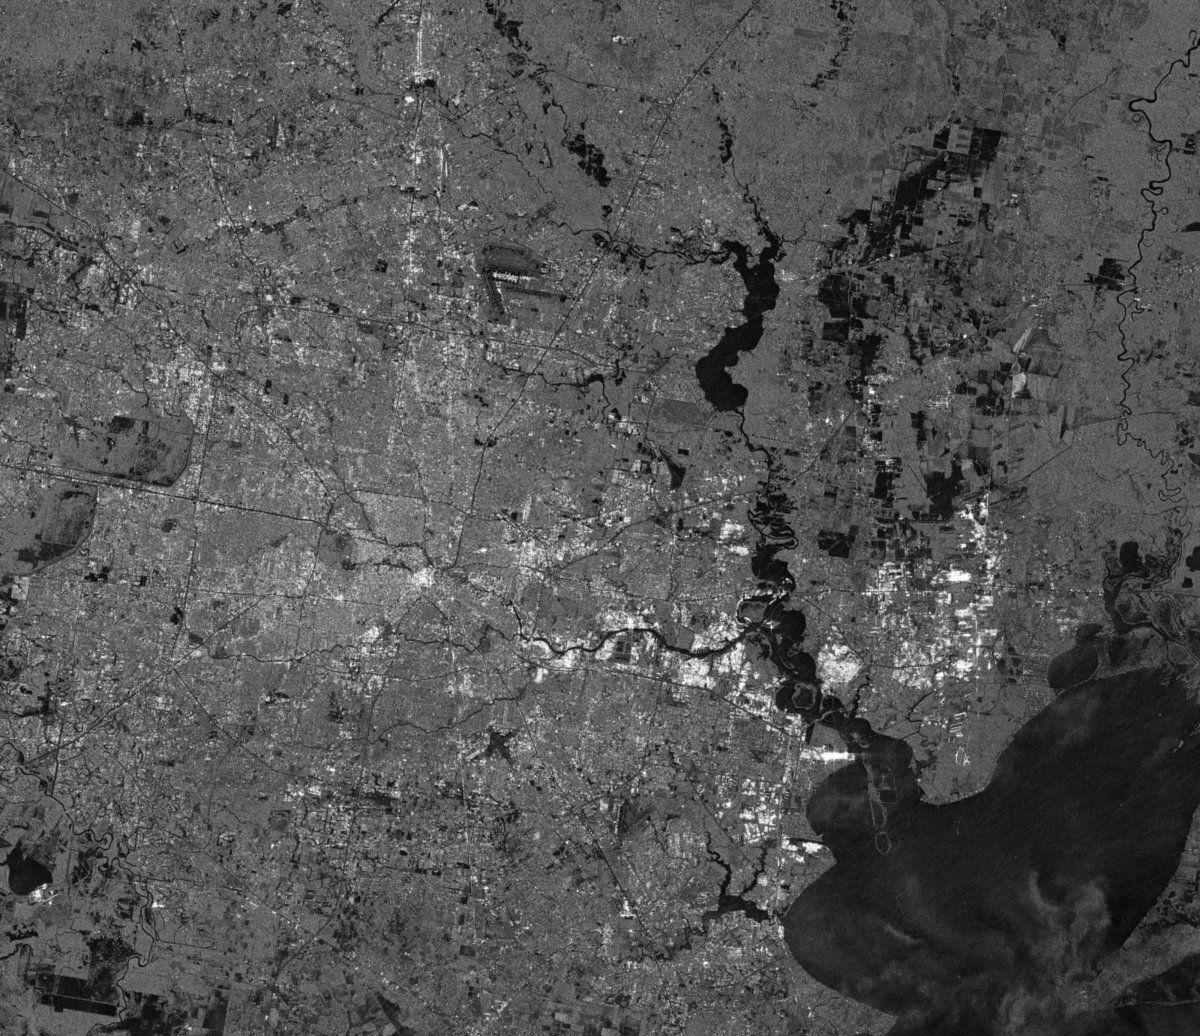 Houston - floods - inondations - Harvey - sentinel-1 - satellite - radar - ESA - Copernicus - Airbus